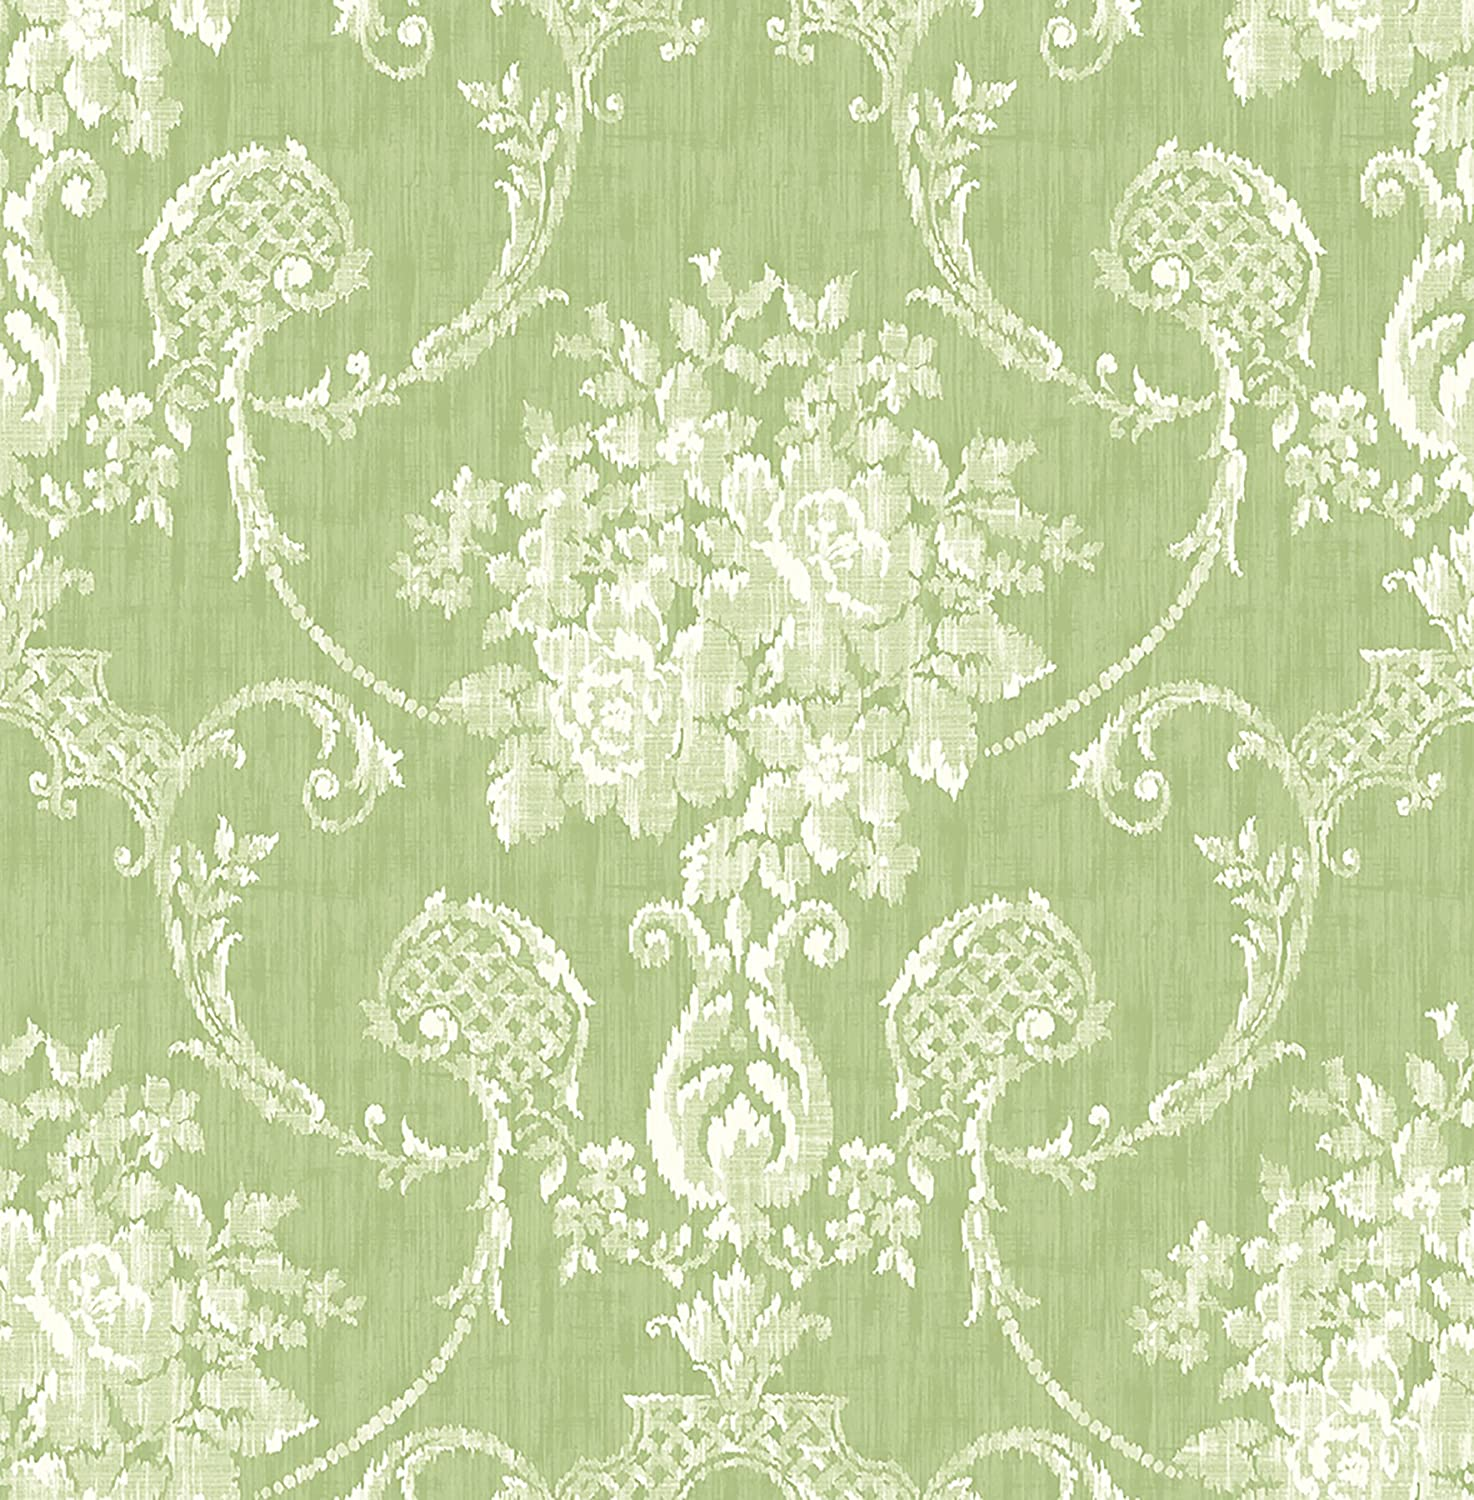 A Street Prints 2702 22747 Winsome Green Floral Damask Wallpaper